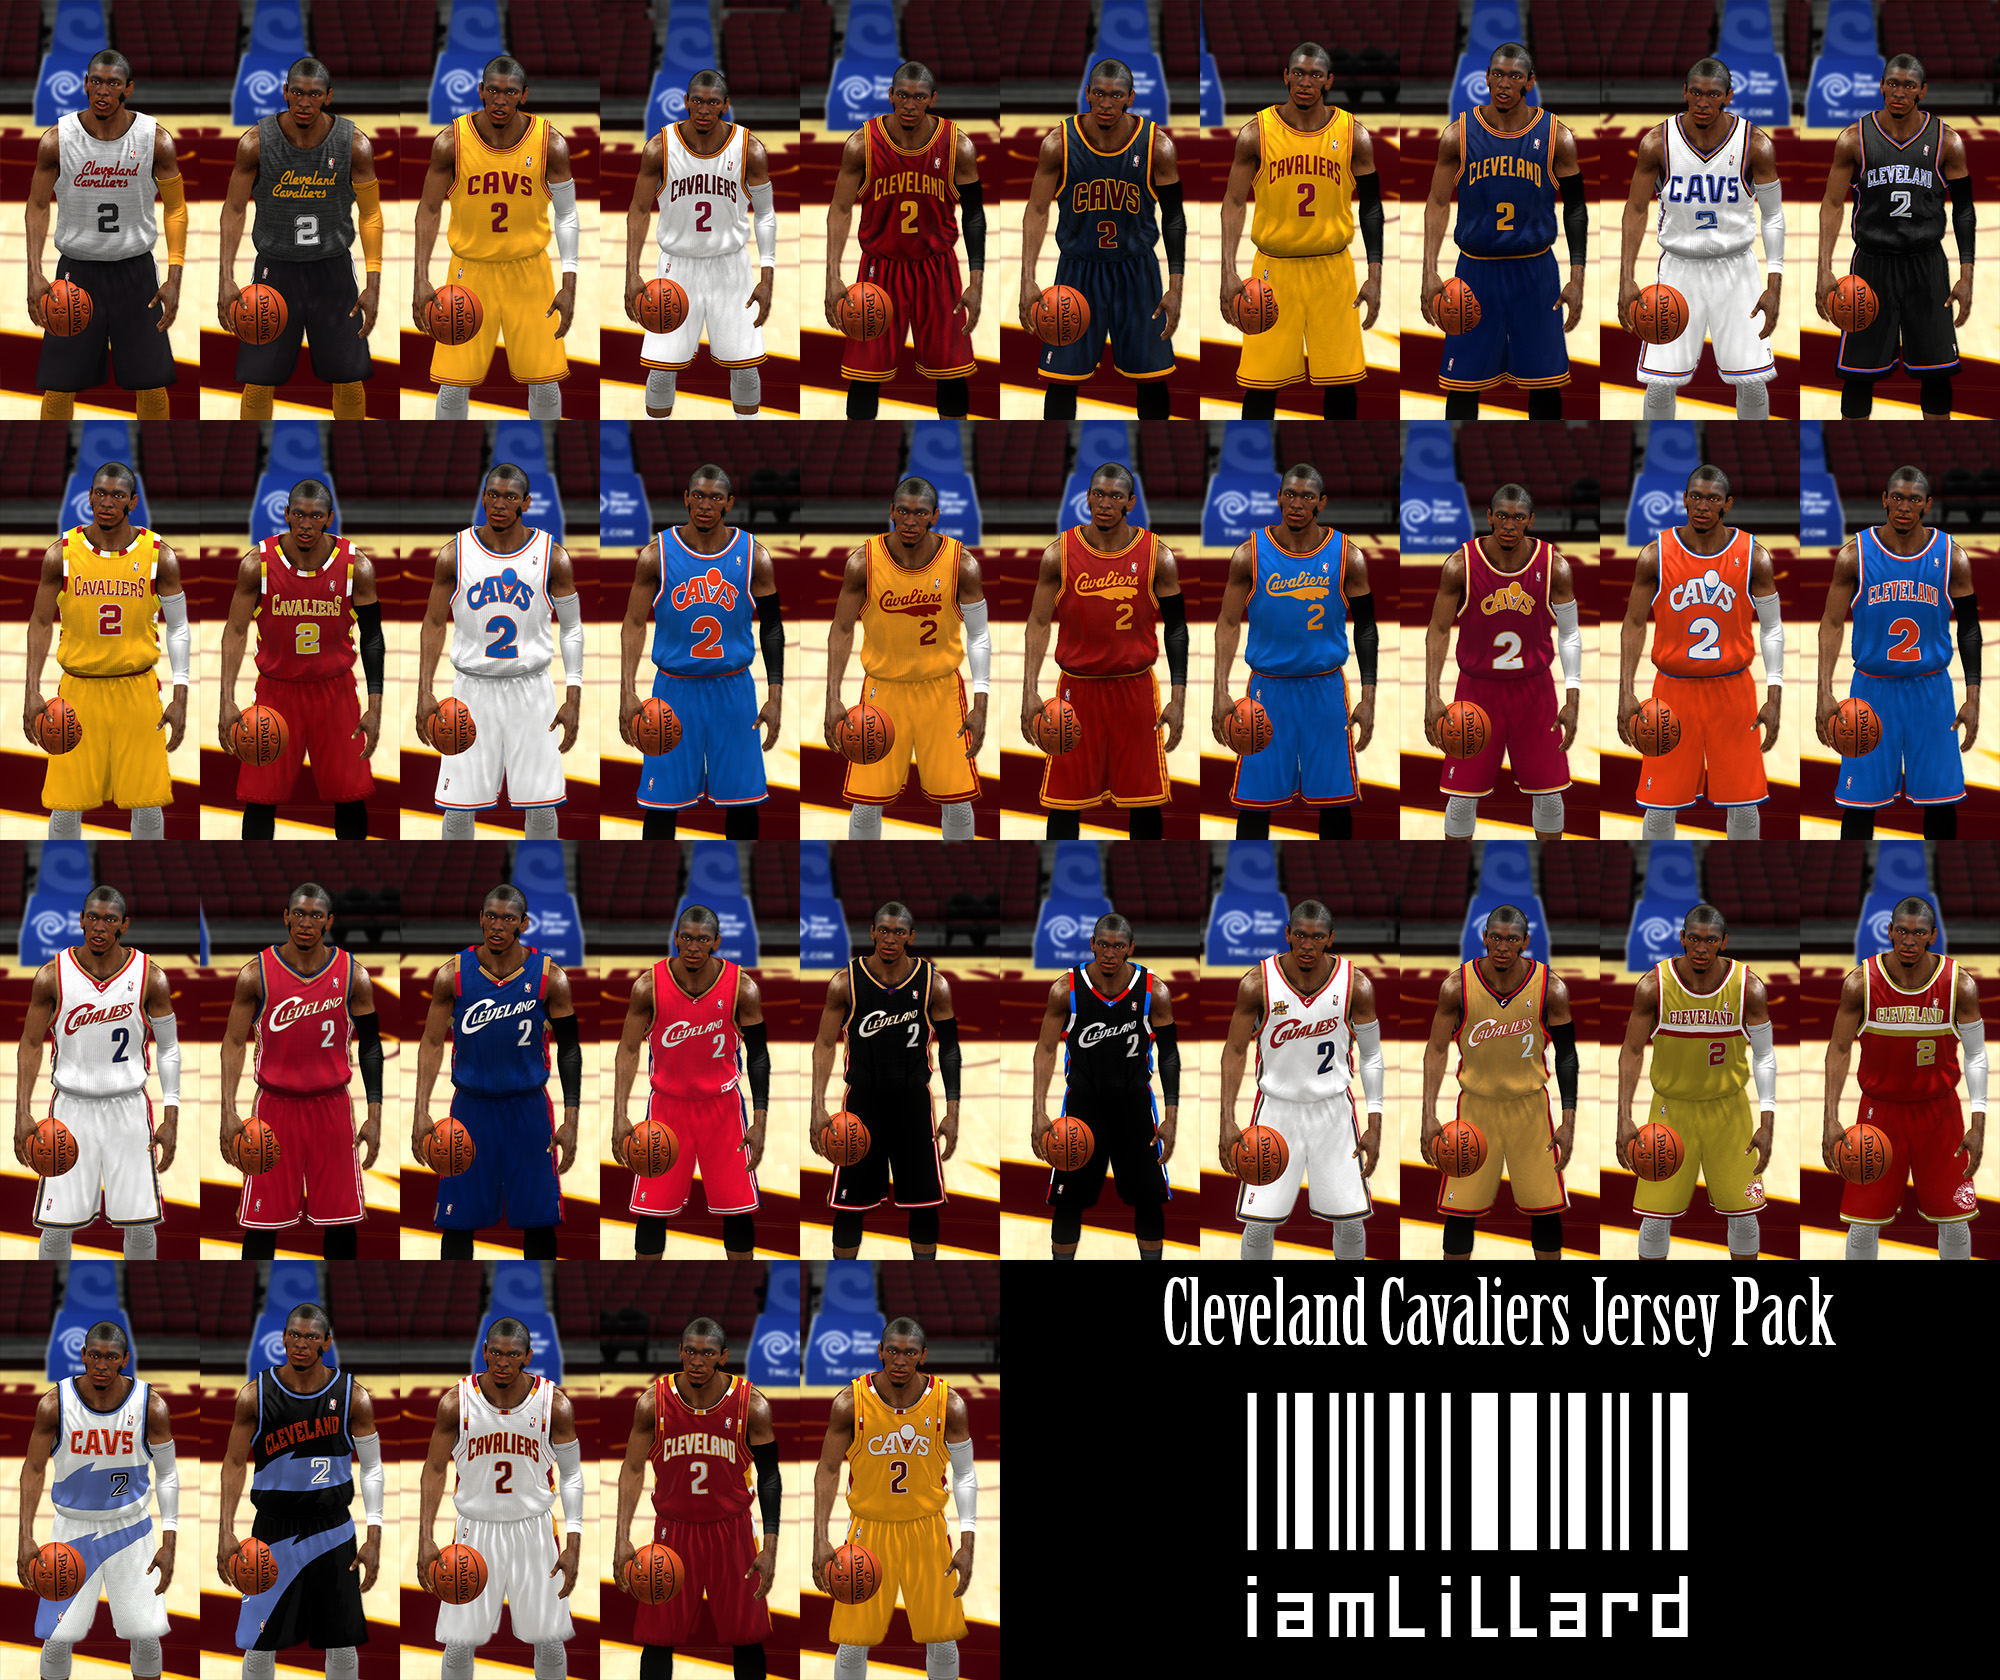 UJP Cleveland Cavaliers Jersey